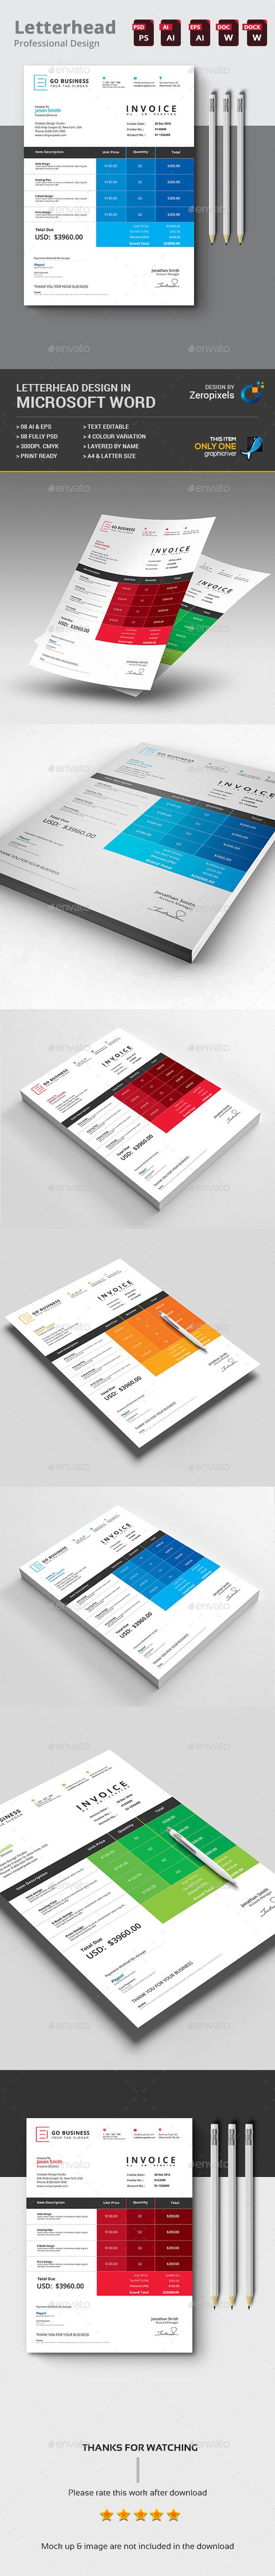 corporate invoice design template - proposals & invoices, Invoice examples